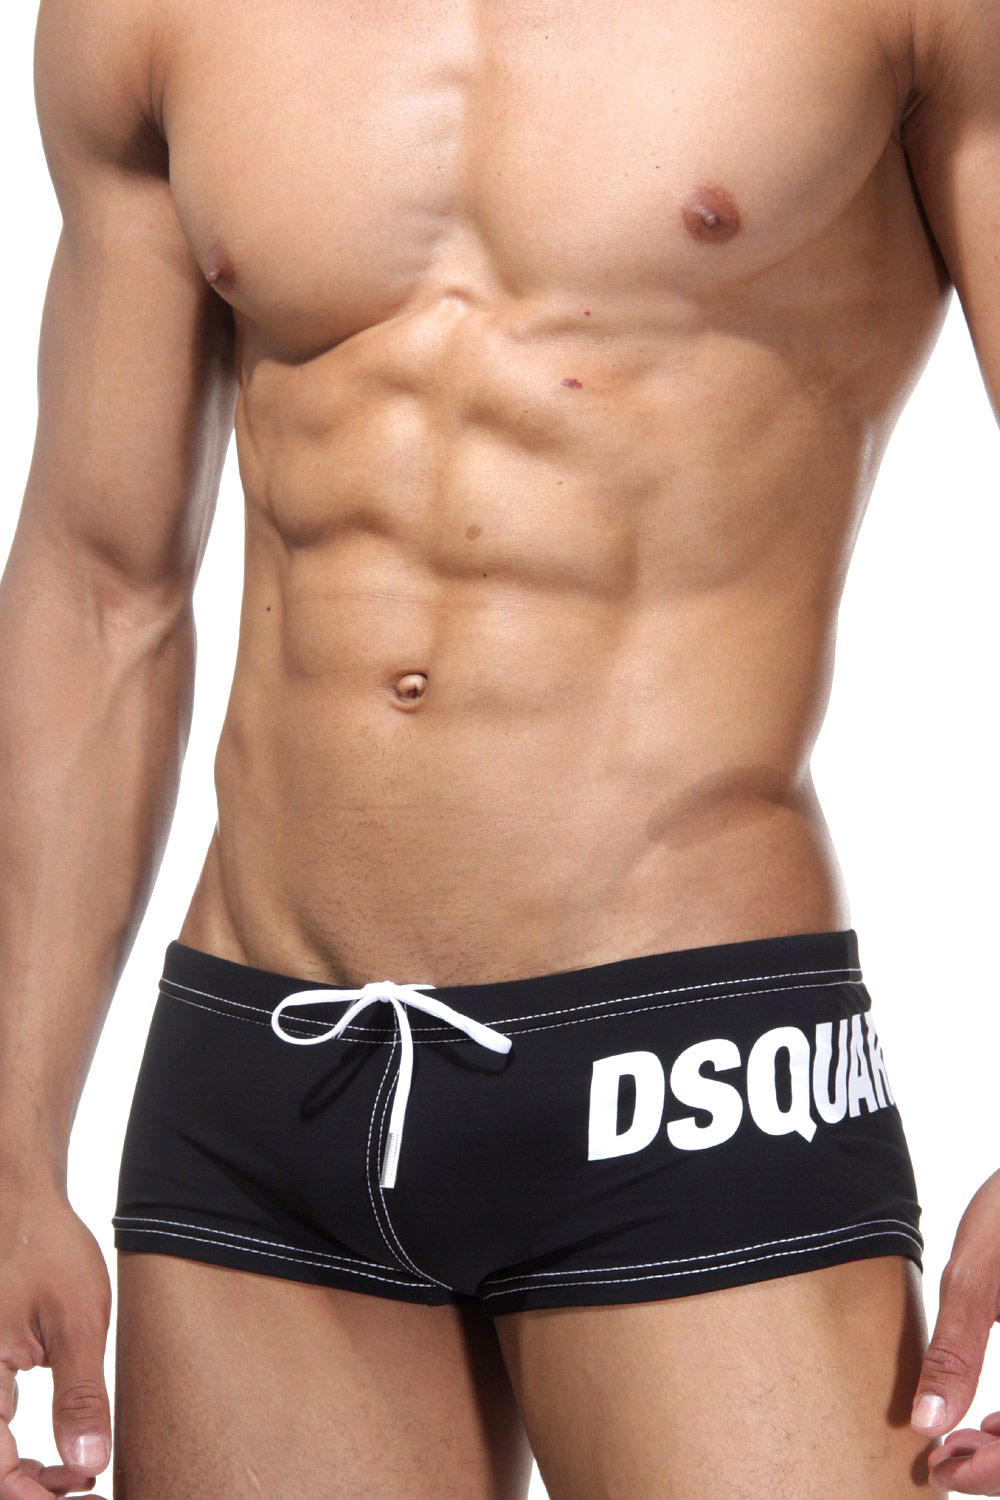 DSQUARED2 B084 Beachpants auf oboy.de